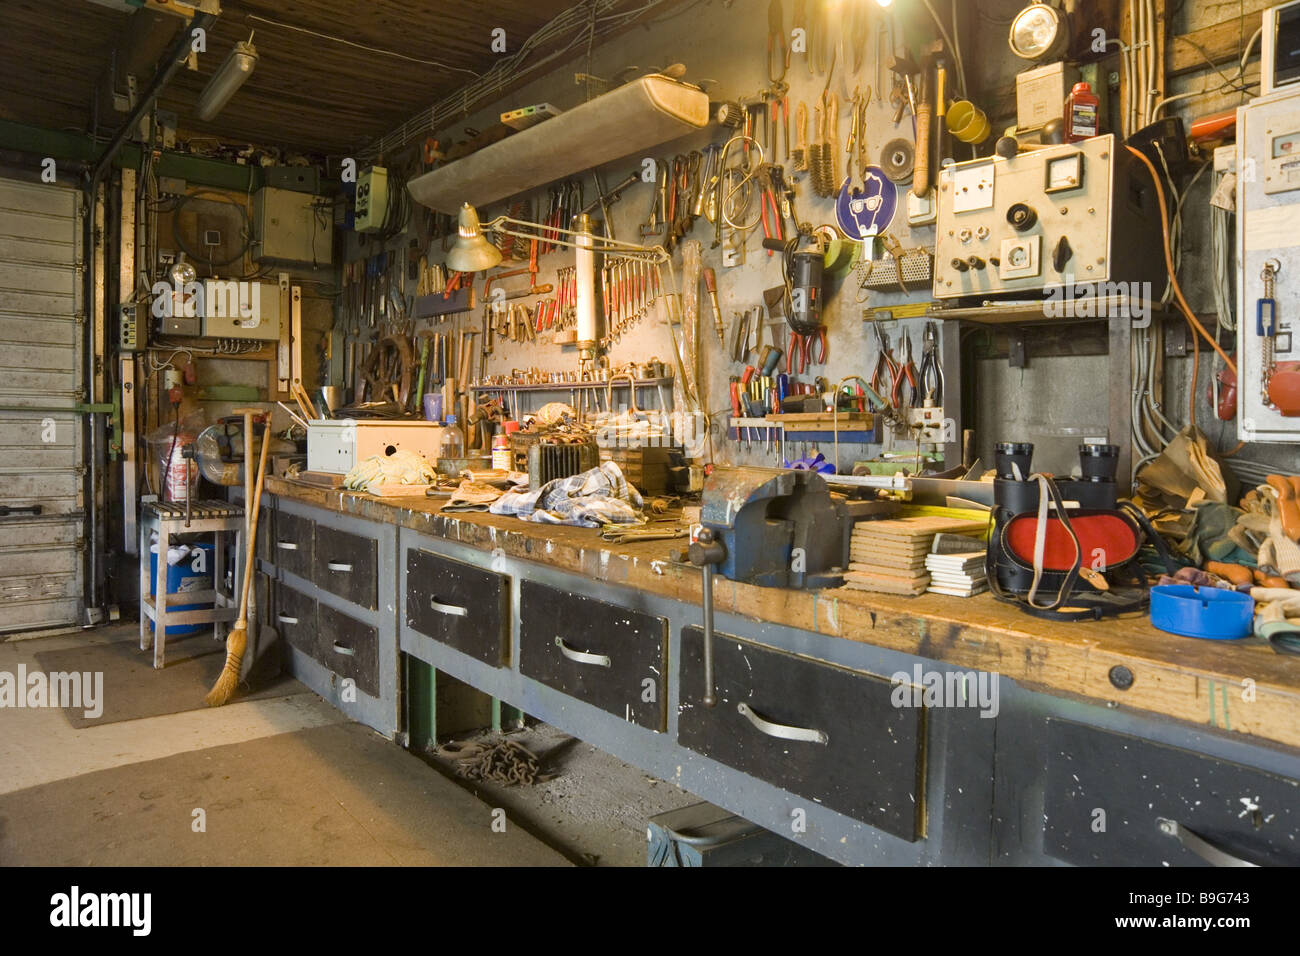 Verbazingwekkend interior garage hobby-workshop Stock Photo: 23099107 - Alamy EO-67